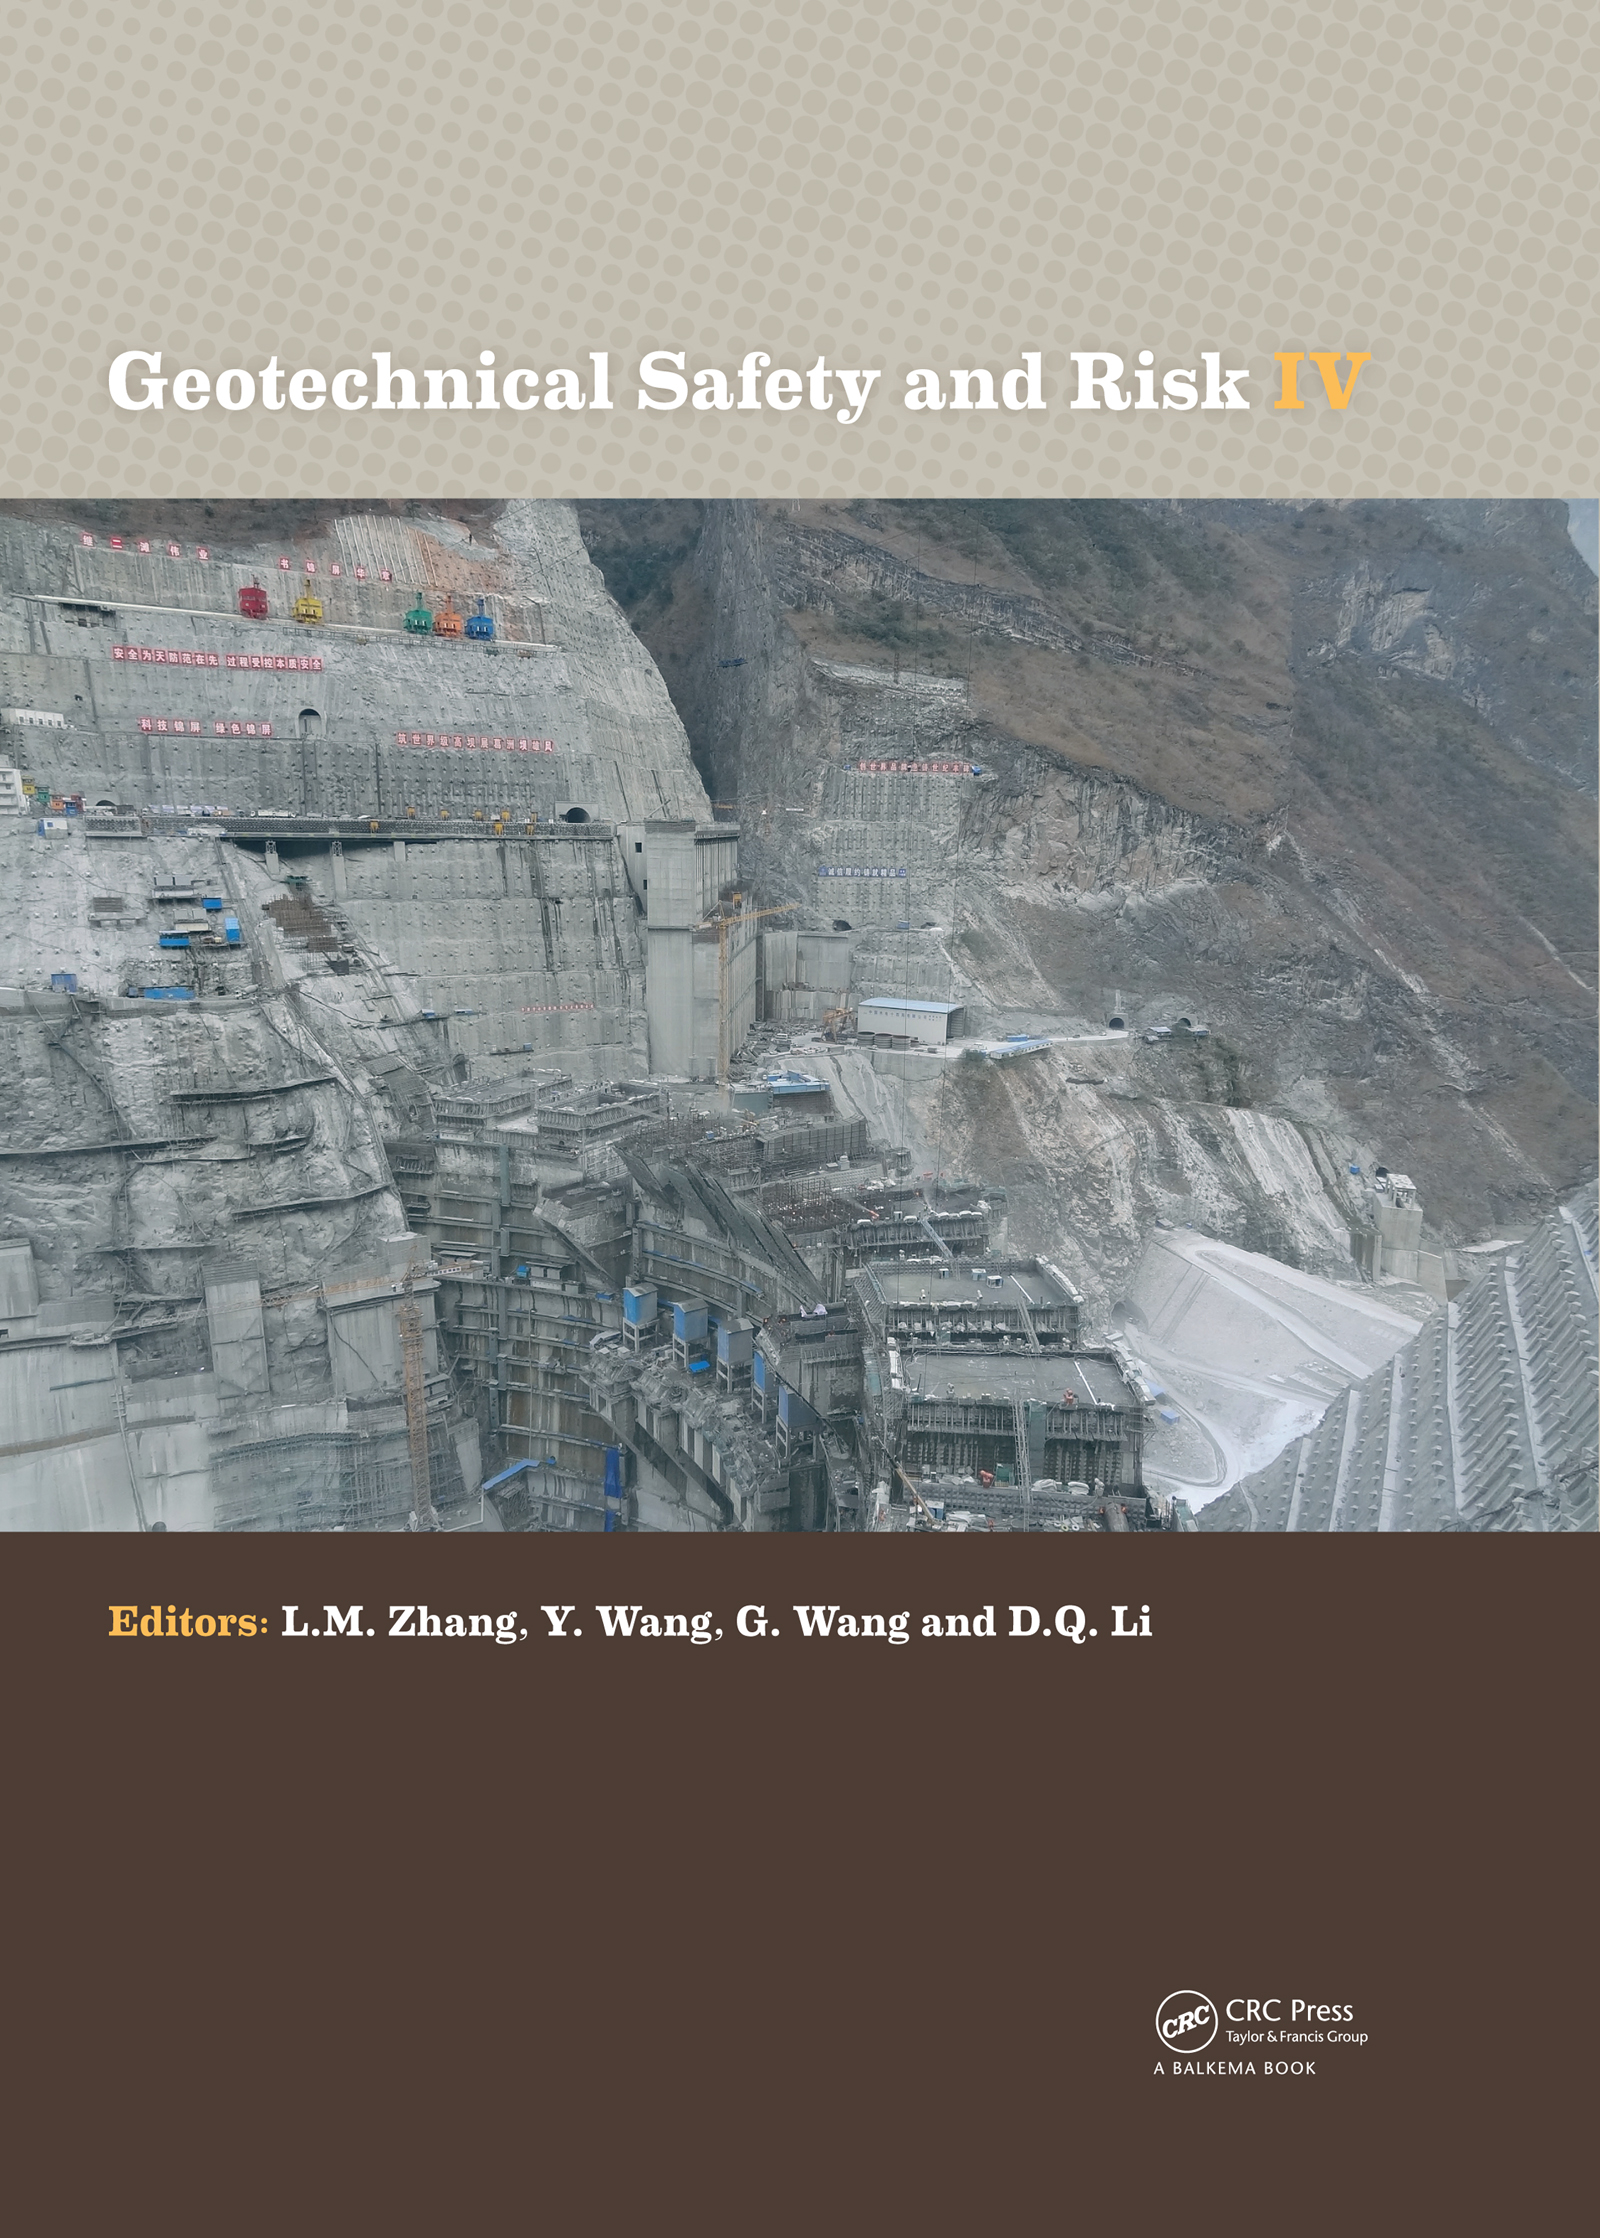 Geotechnical Safety and Risk IV: 1st Edition (Pack - Book and CD) book cover